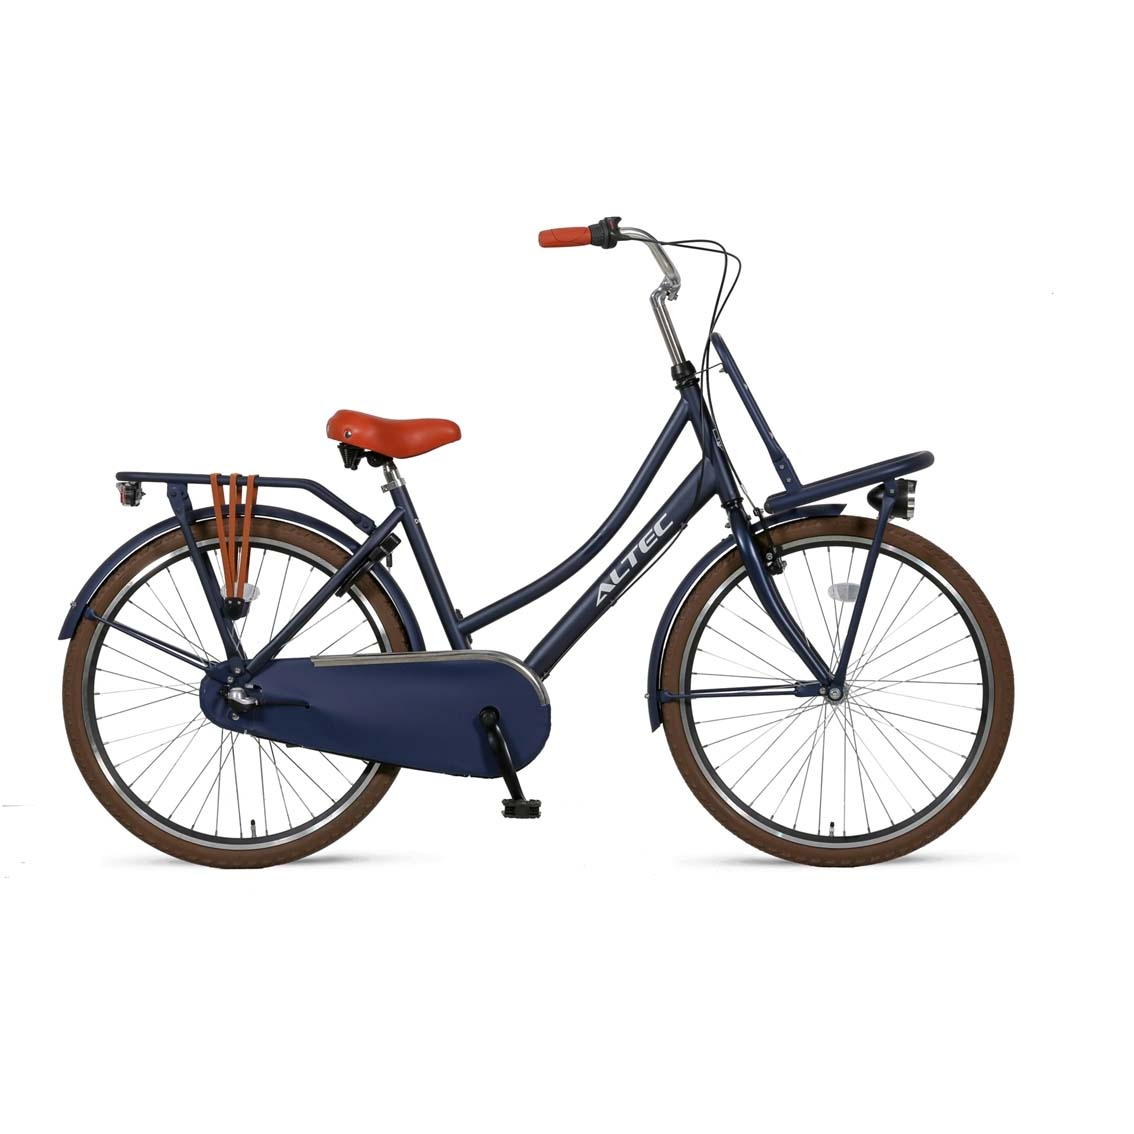 Altec-Dutch-26inch-Transportfiets-Jeans-Blue-2019 copy